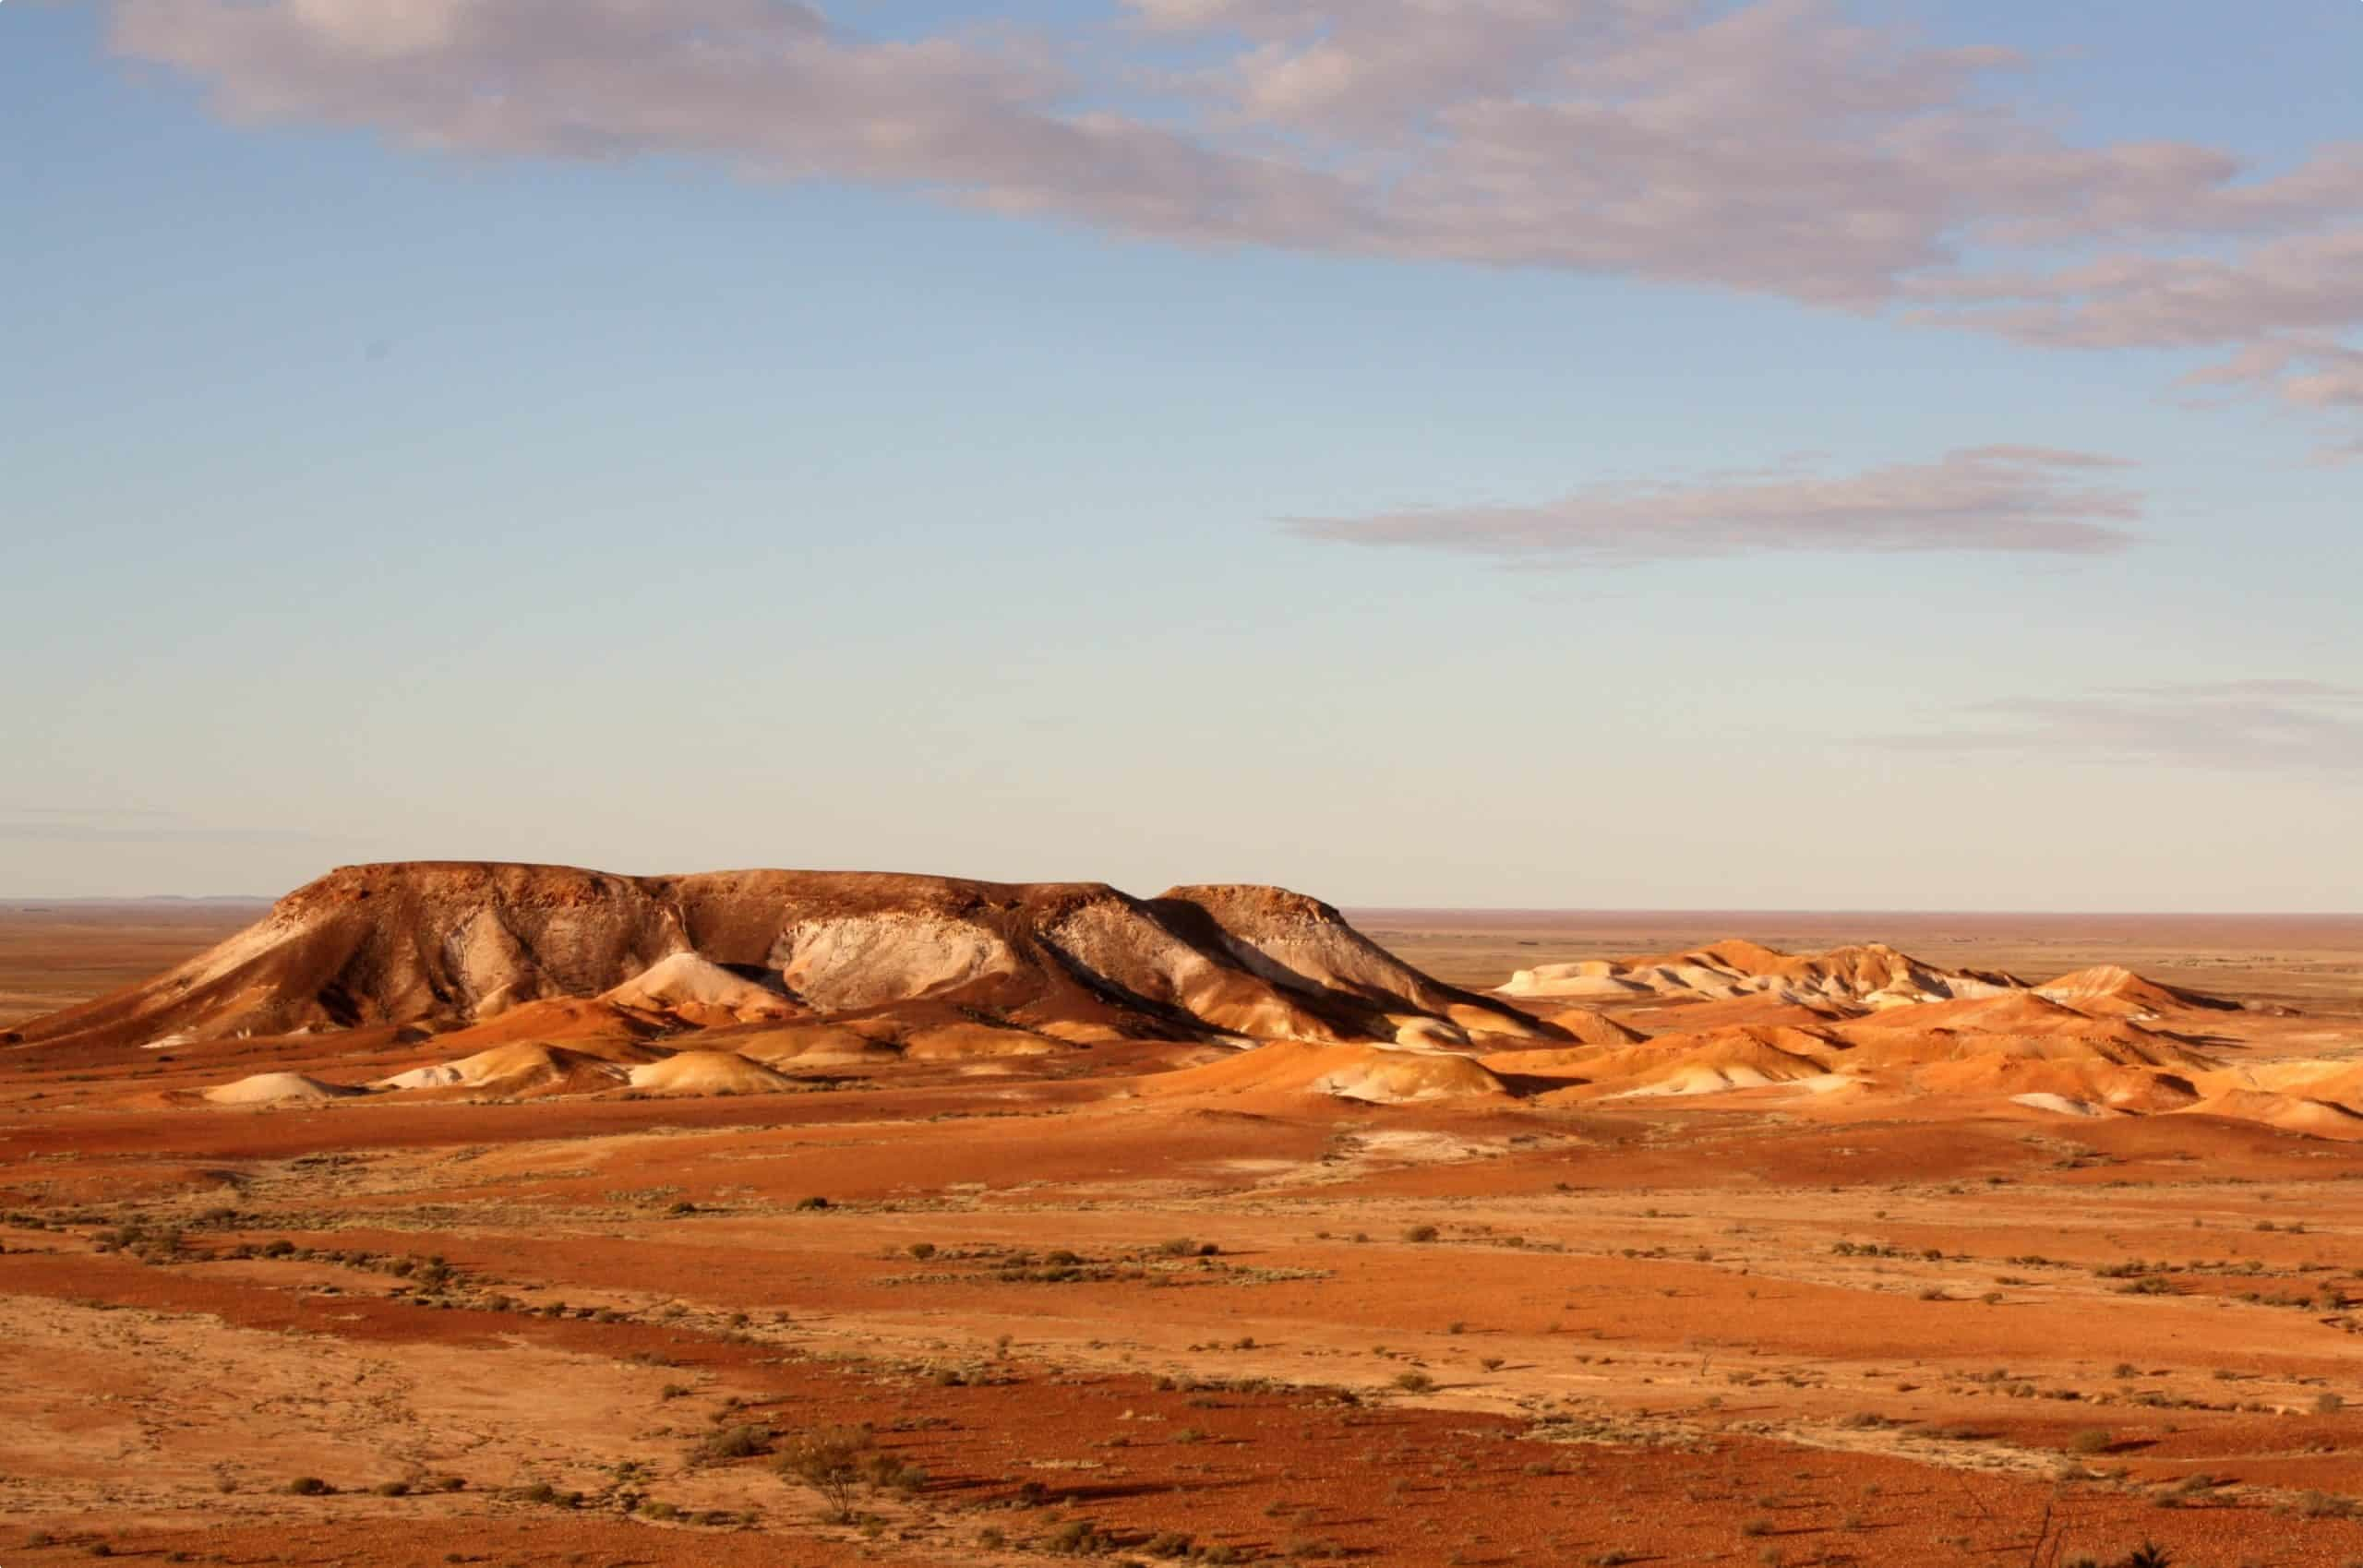 The Breakaways, situated near Coober Pedy